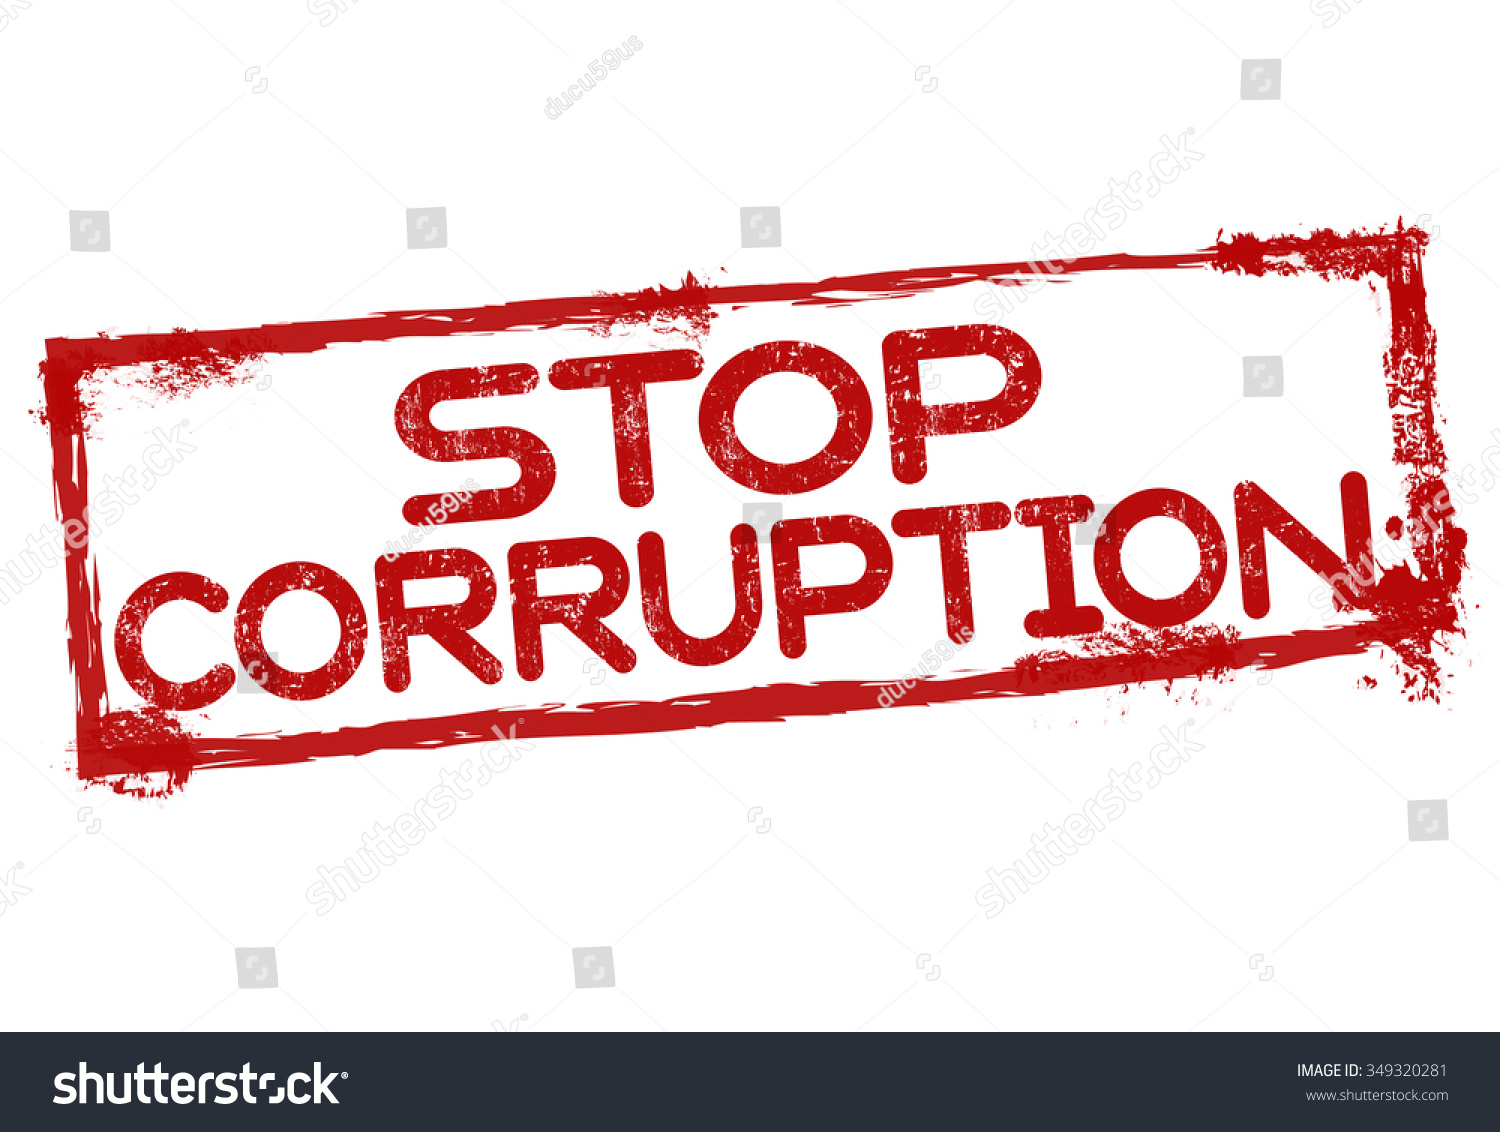 prevent bribery The first contested case for failure to prevent bribery under s7 of the bribery act no adequate procedures in place to prevent bribery.